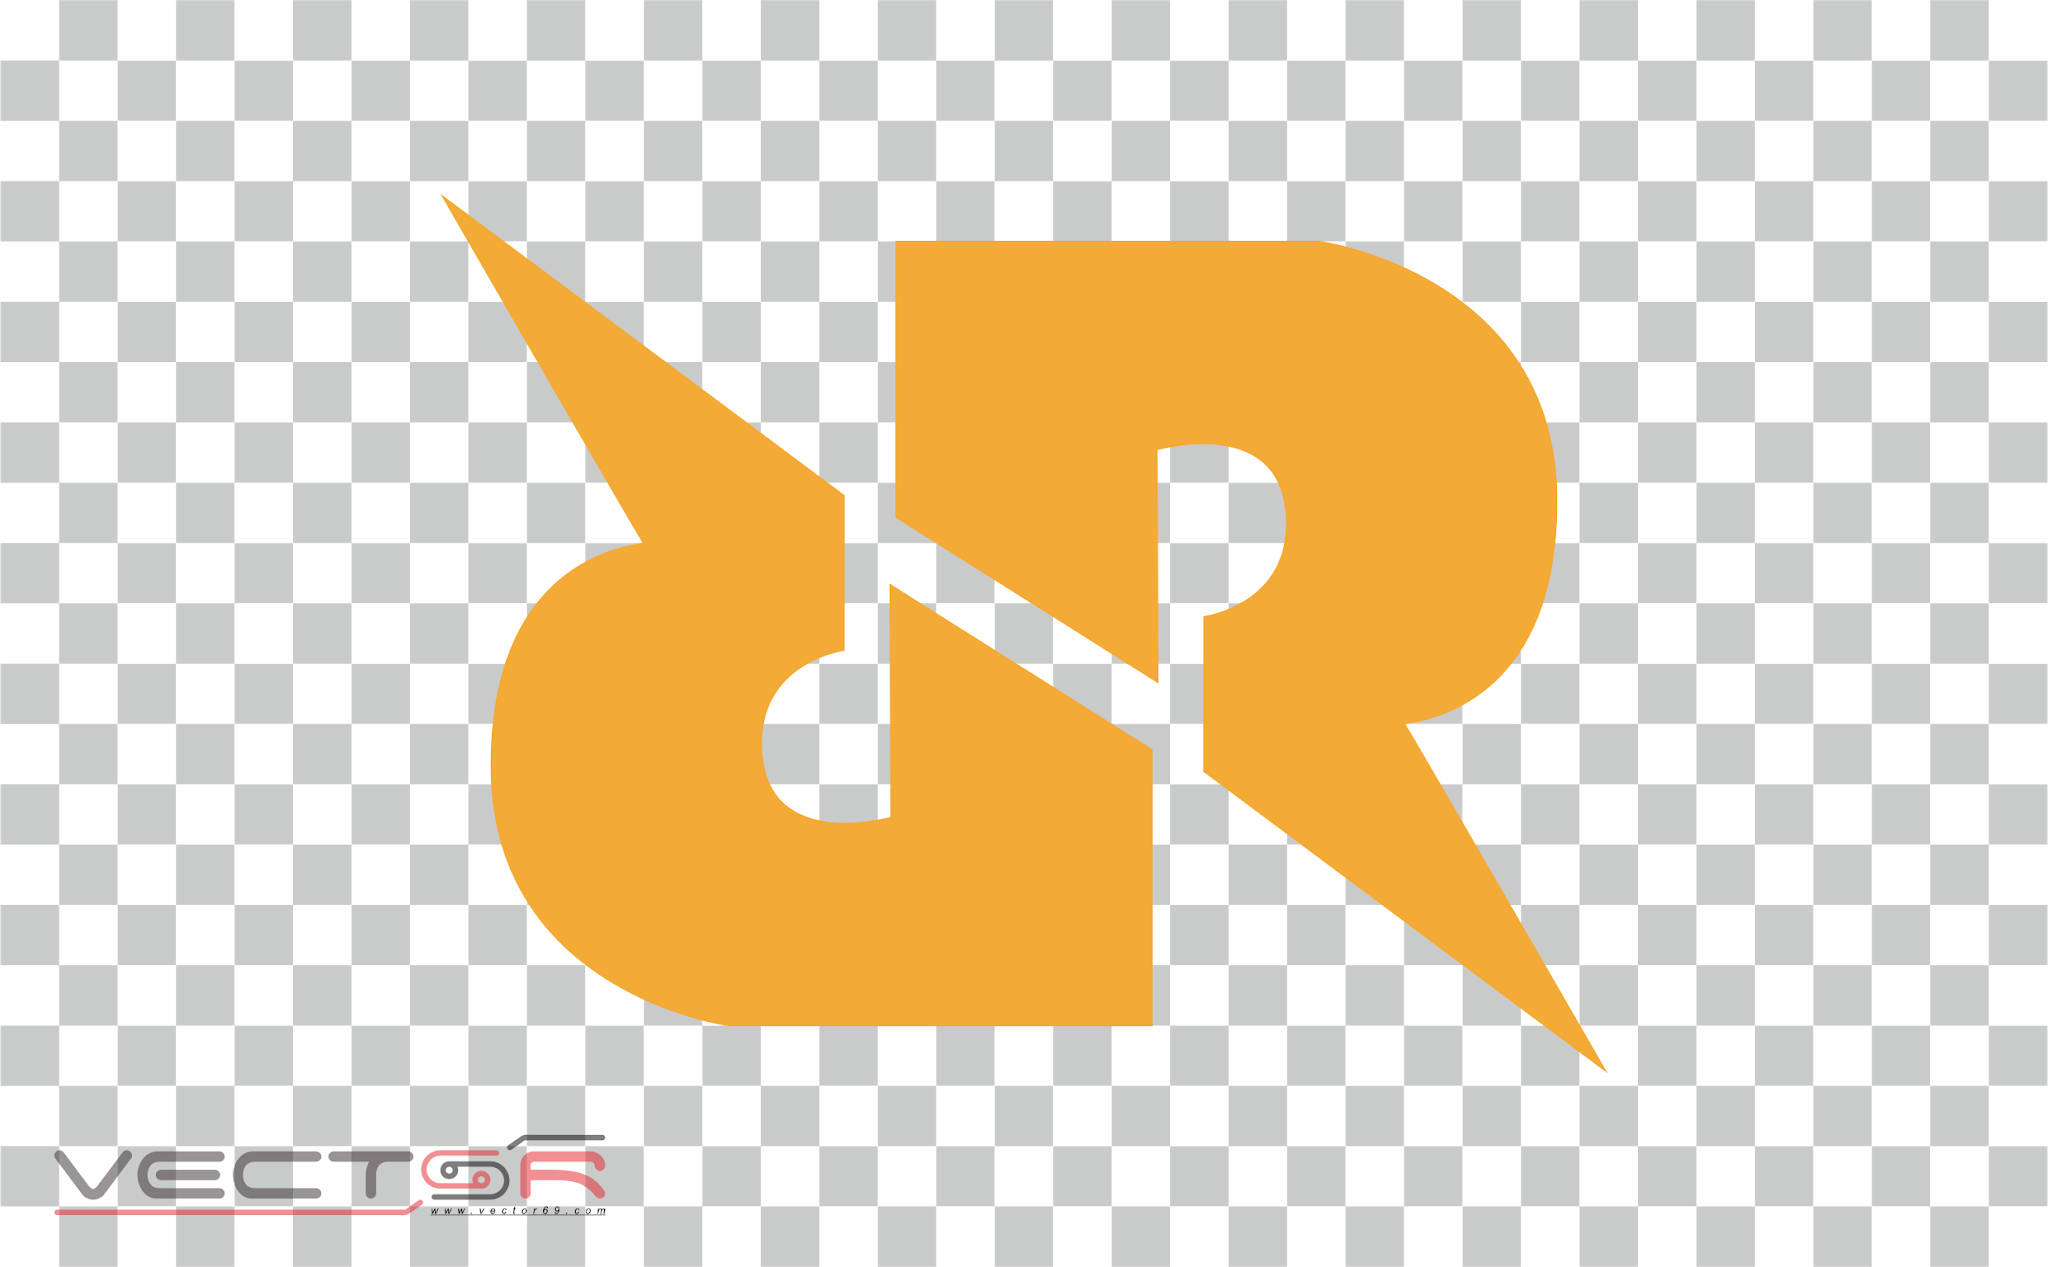 RRQ (Rex Regum Qeon) Logo - Download Vector File PNG (Portable Network Graphics)